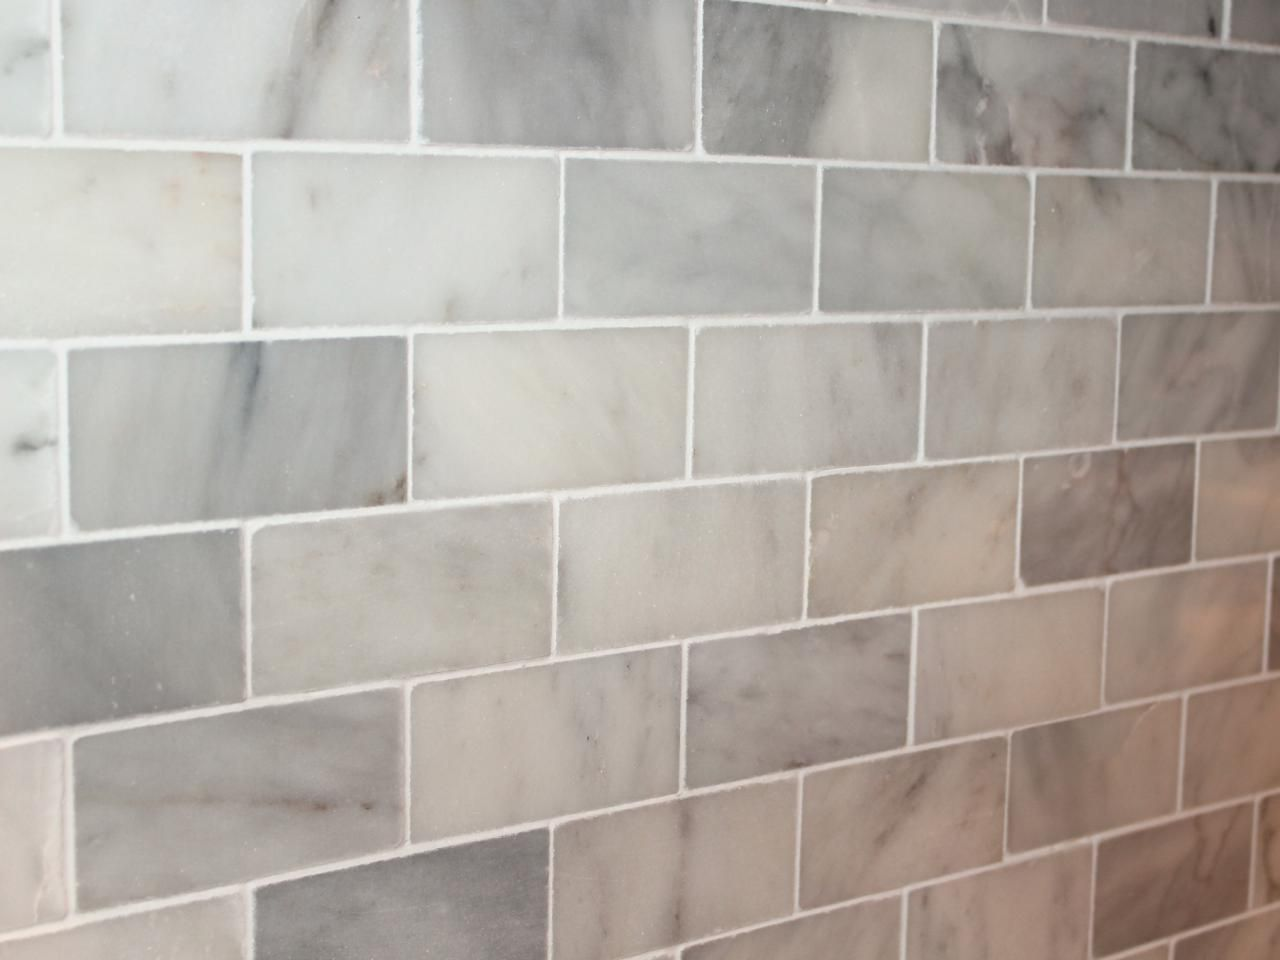 Visit carraratiles and design your home with luxury carrara visit carraratiles and design your home with luxury carrara marble tiles carraratiles dailygadgetfo Image collections